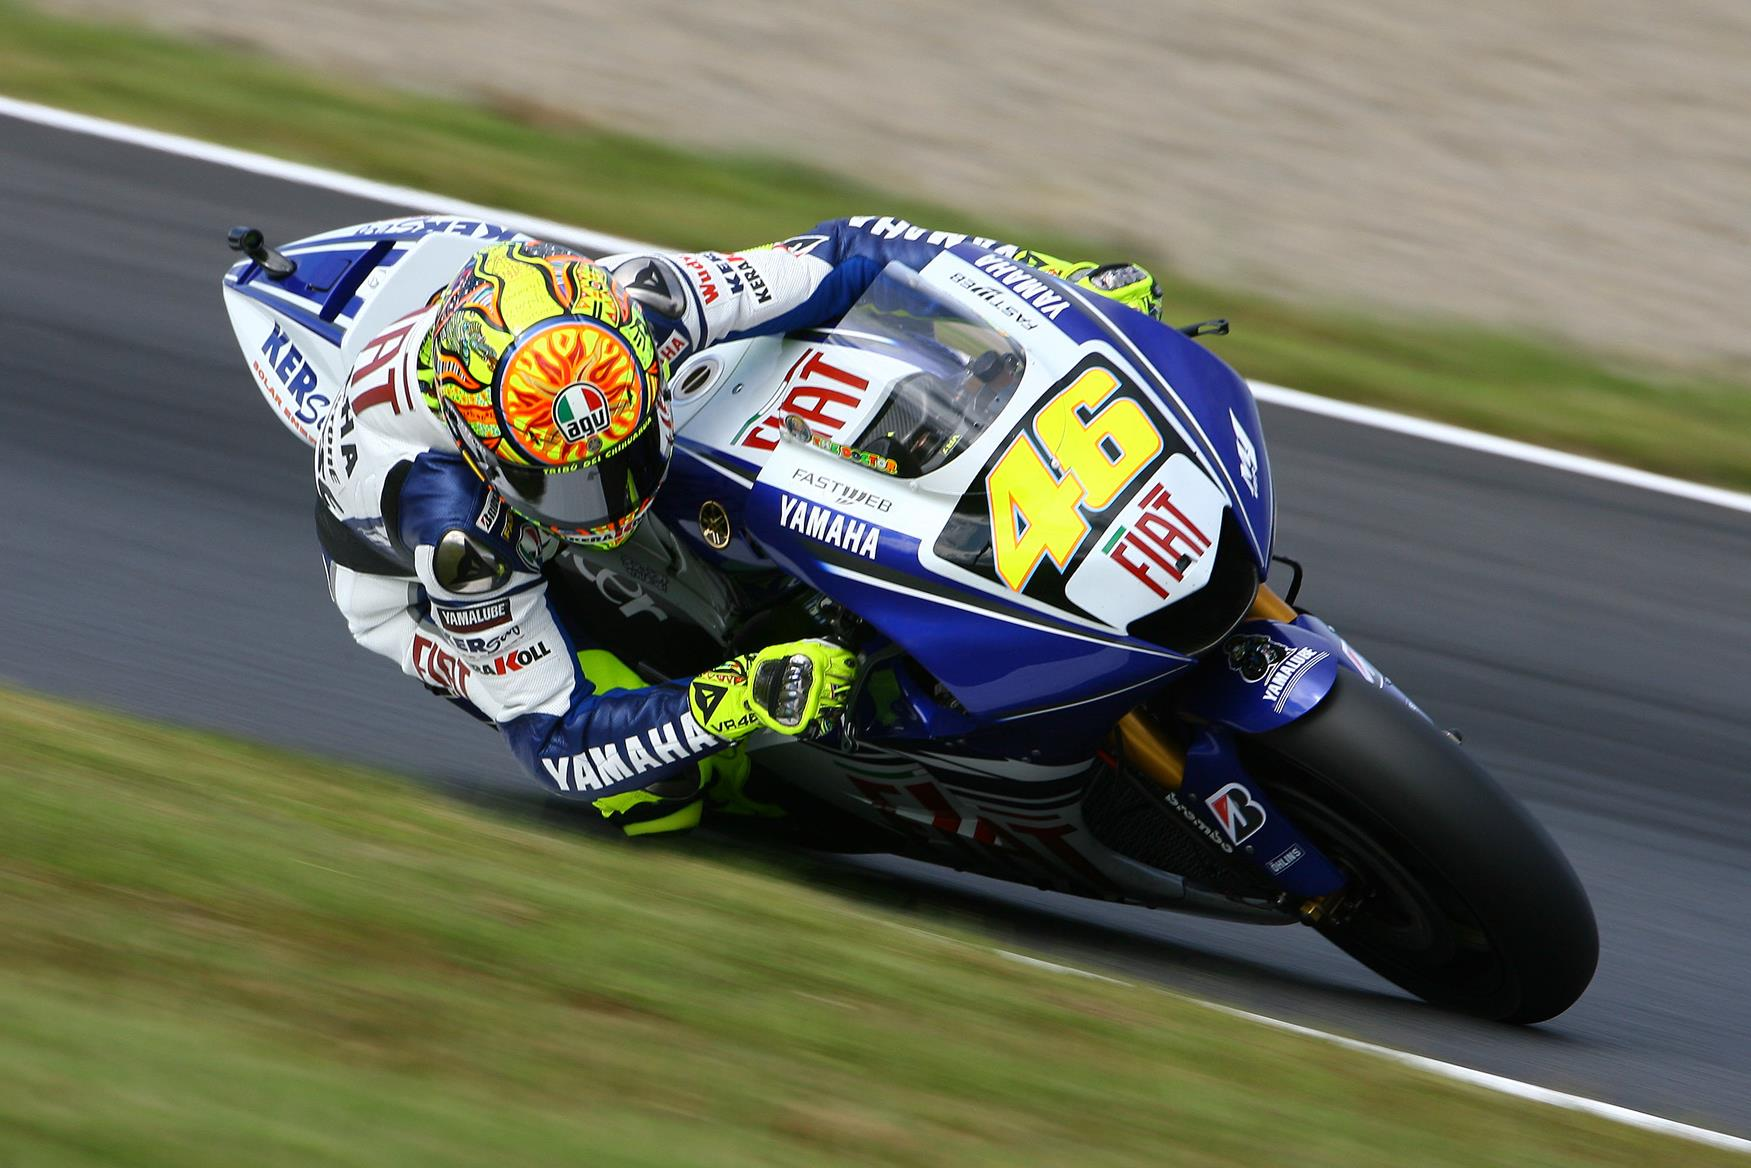 Valentino Rossi was crowned 2008 MotoGP champion at Motegi